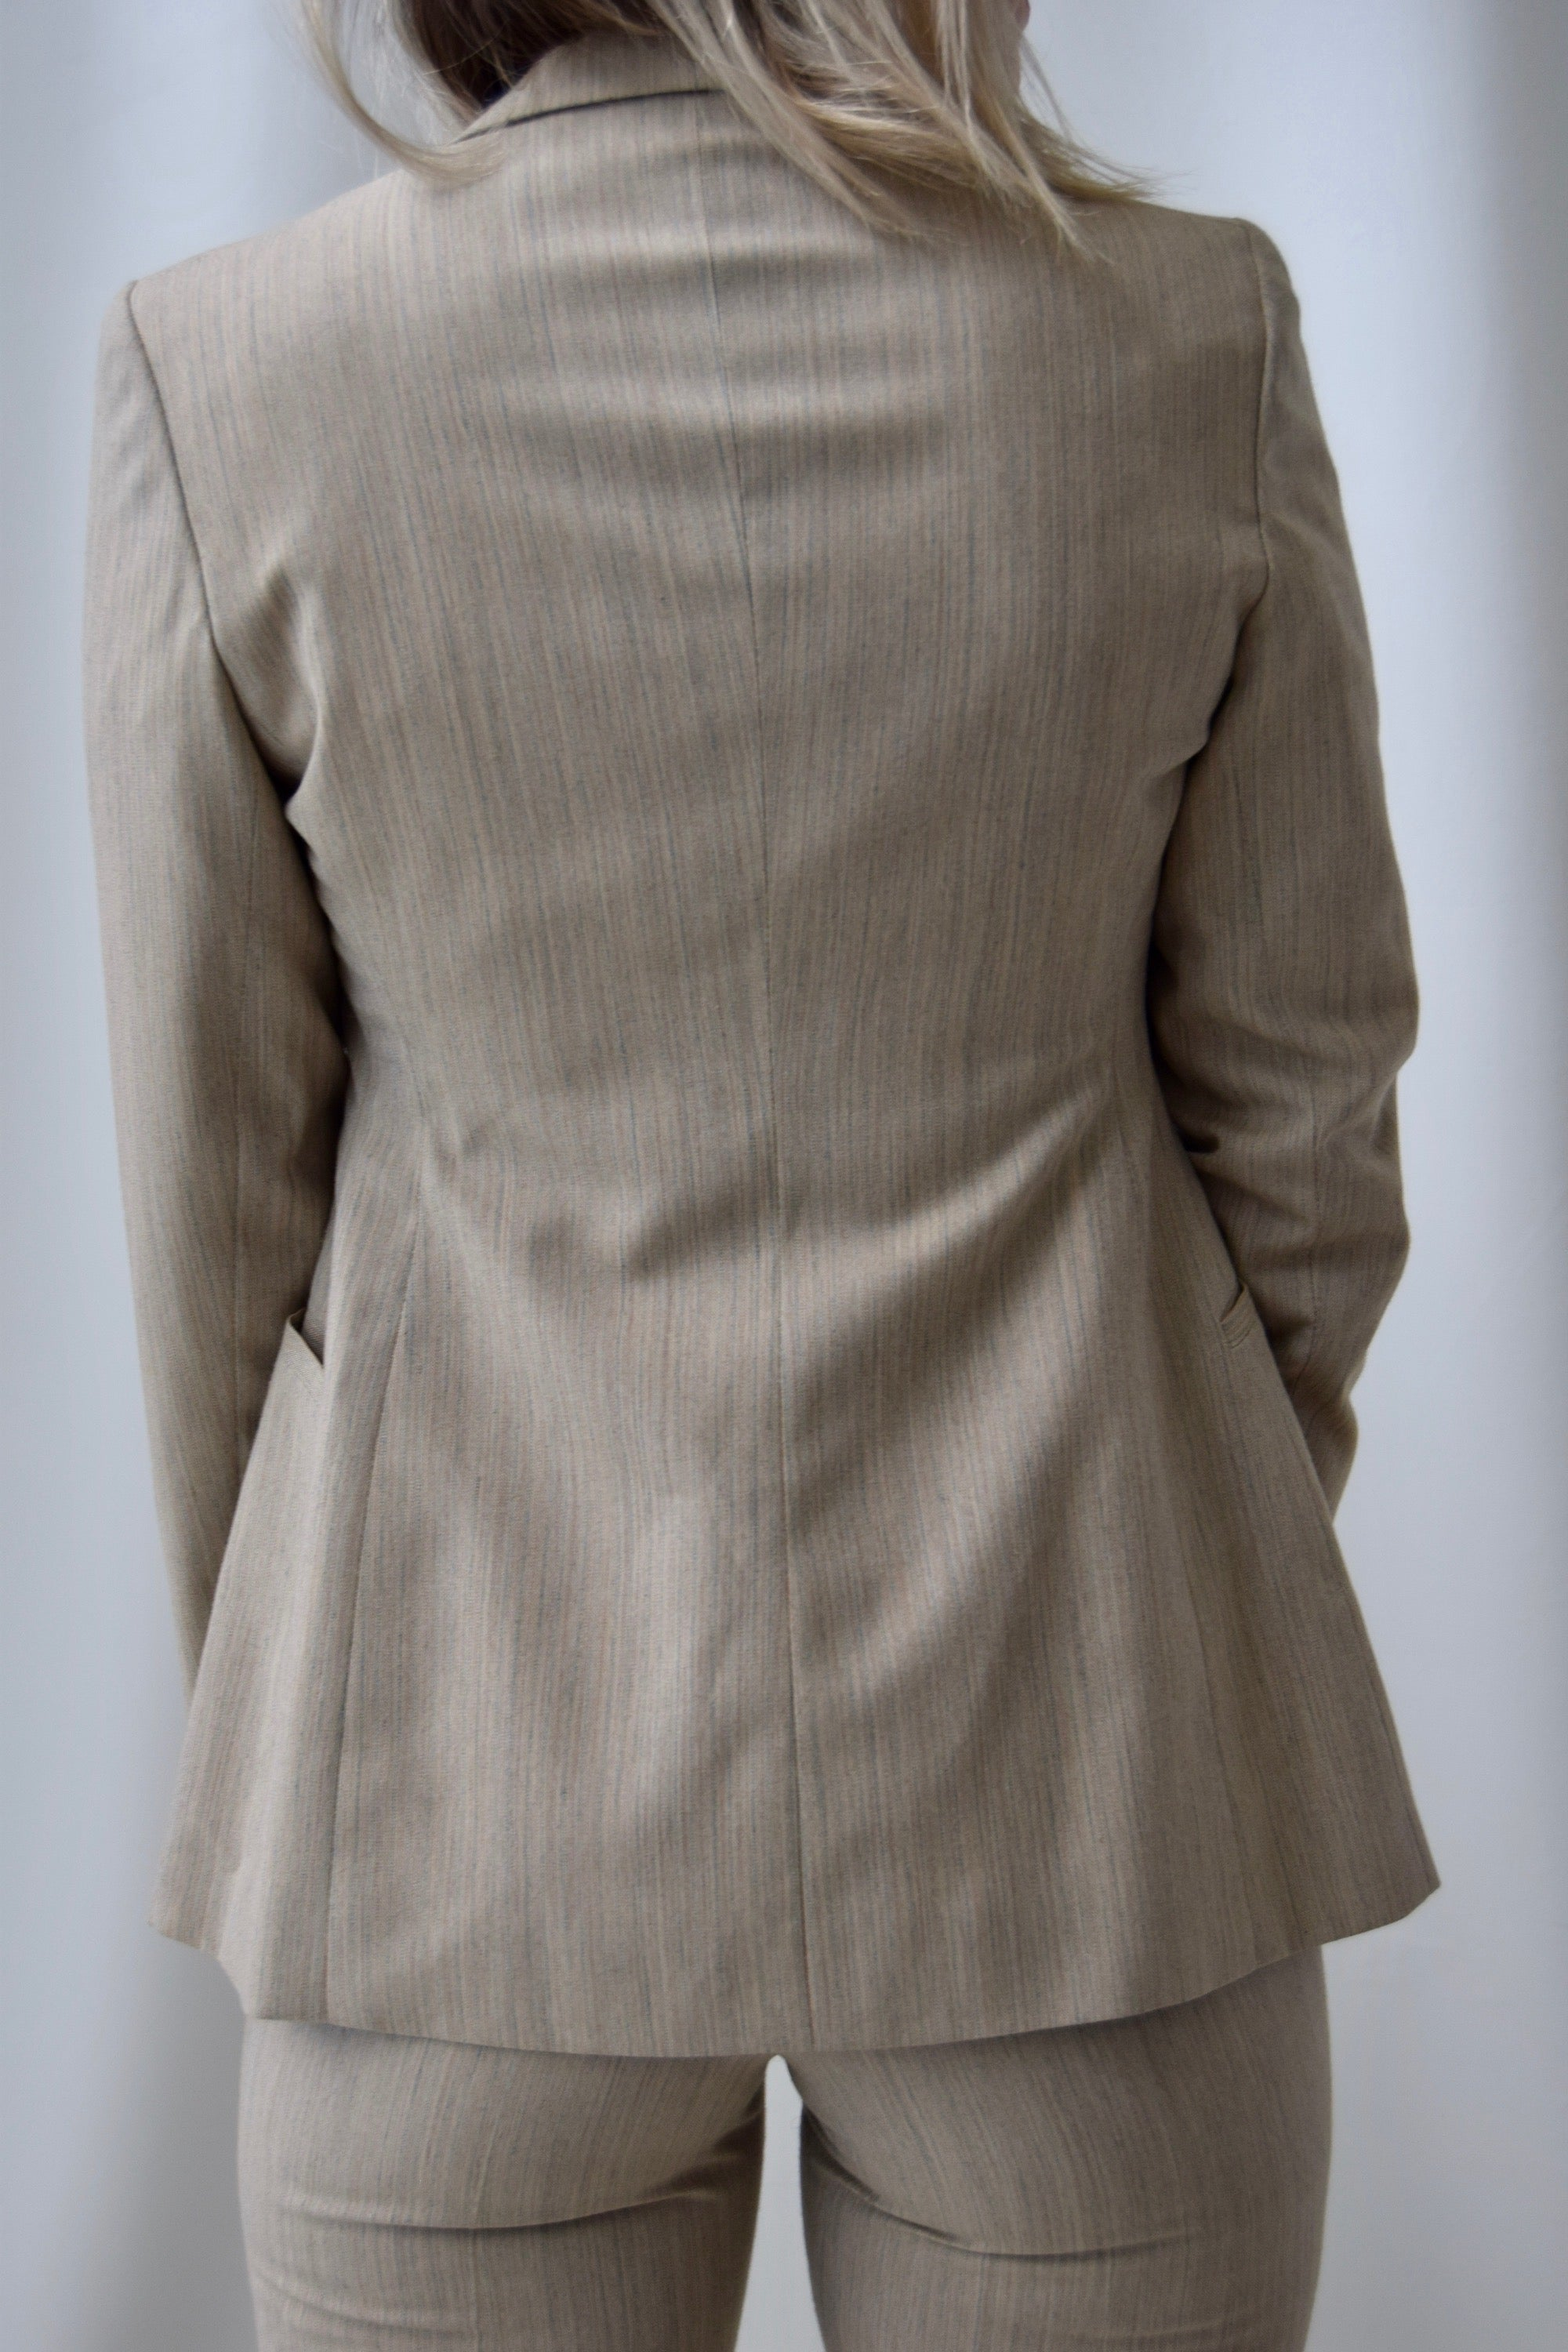 1970's Three Piece Tan Pin Stripe Ladies Wool Suit